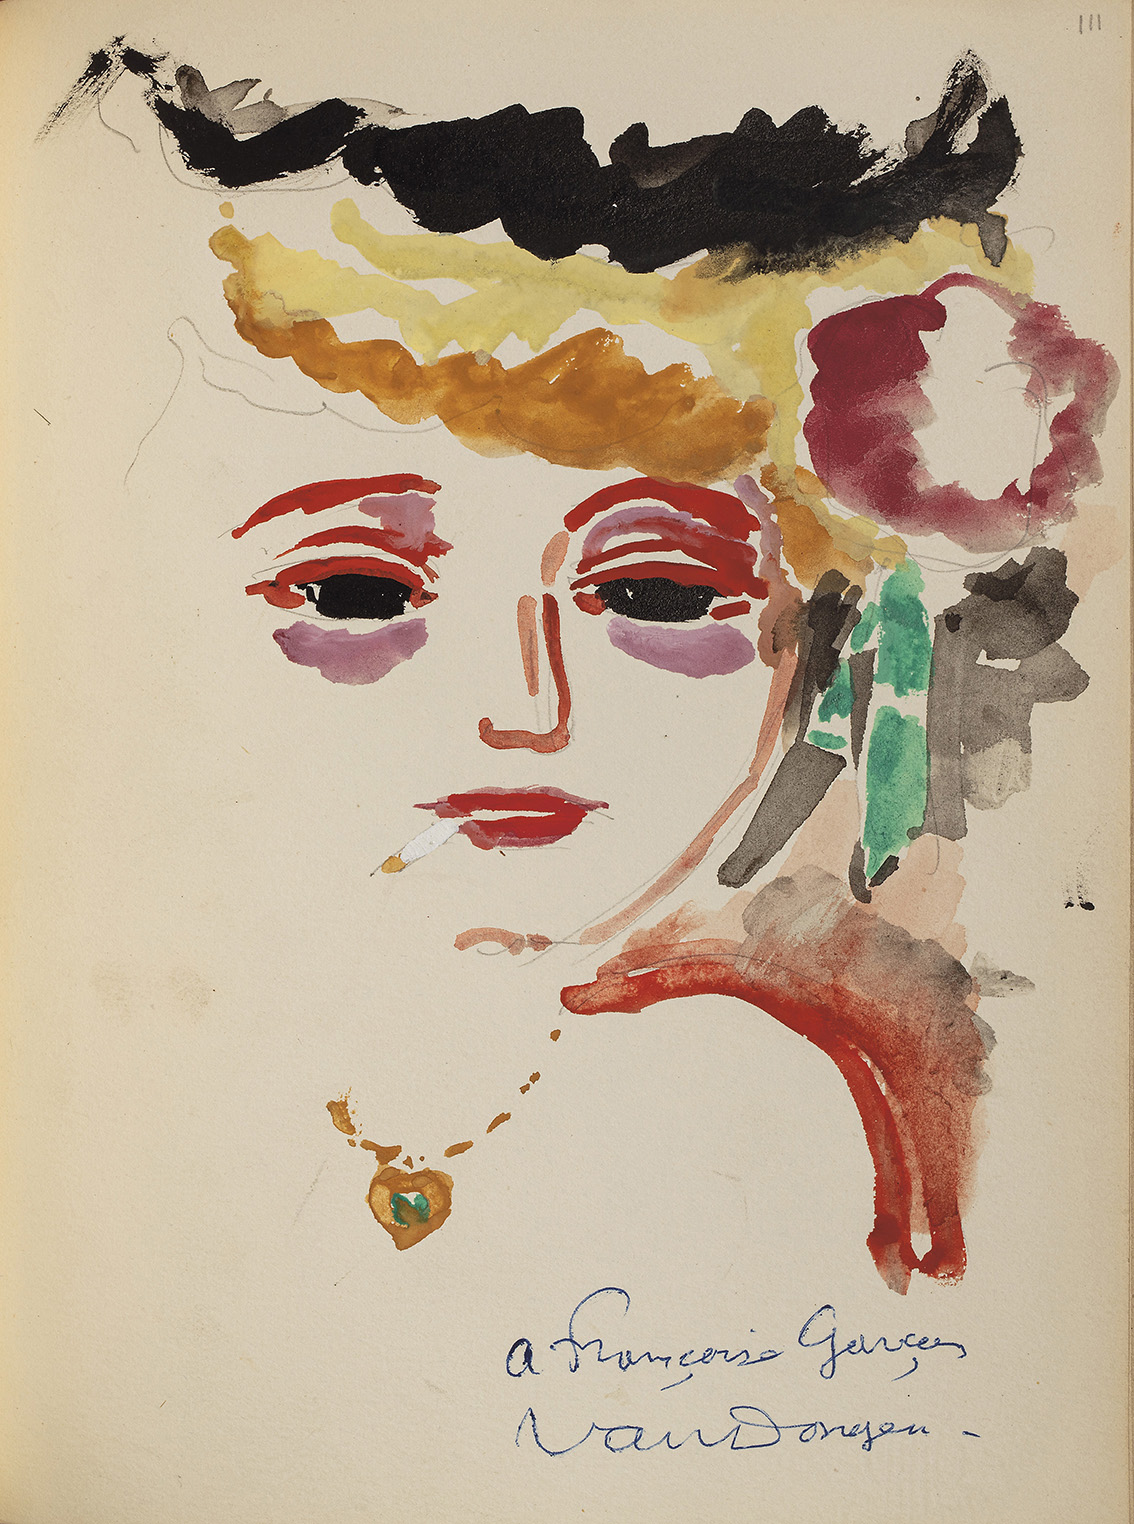 Kees Van Dongen (1877-1968), Portrait, watercolor, 25.5 x 19 cm. (approx. 10 x 7.5 in), dedicated in ball-point pen to Françoise Garçon-Lh